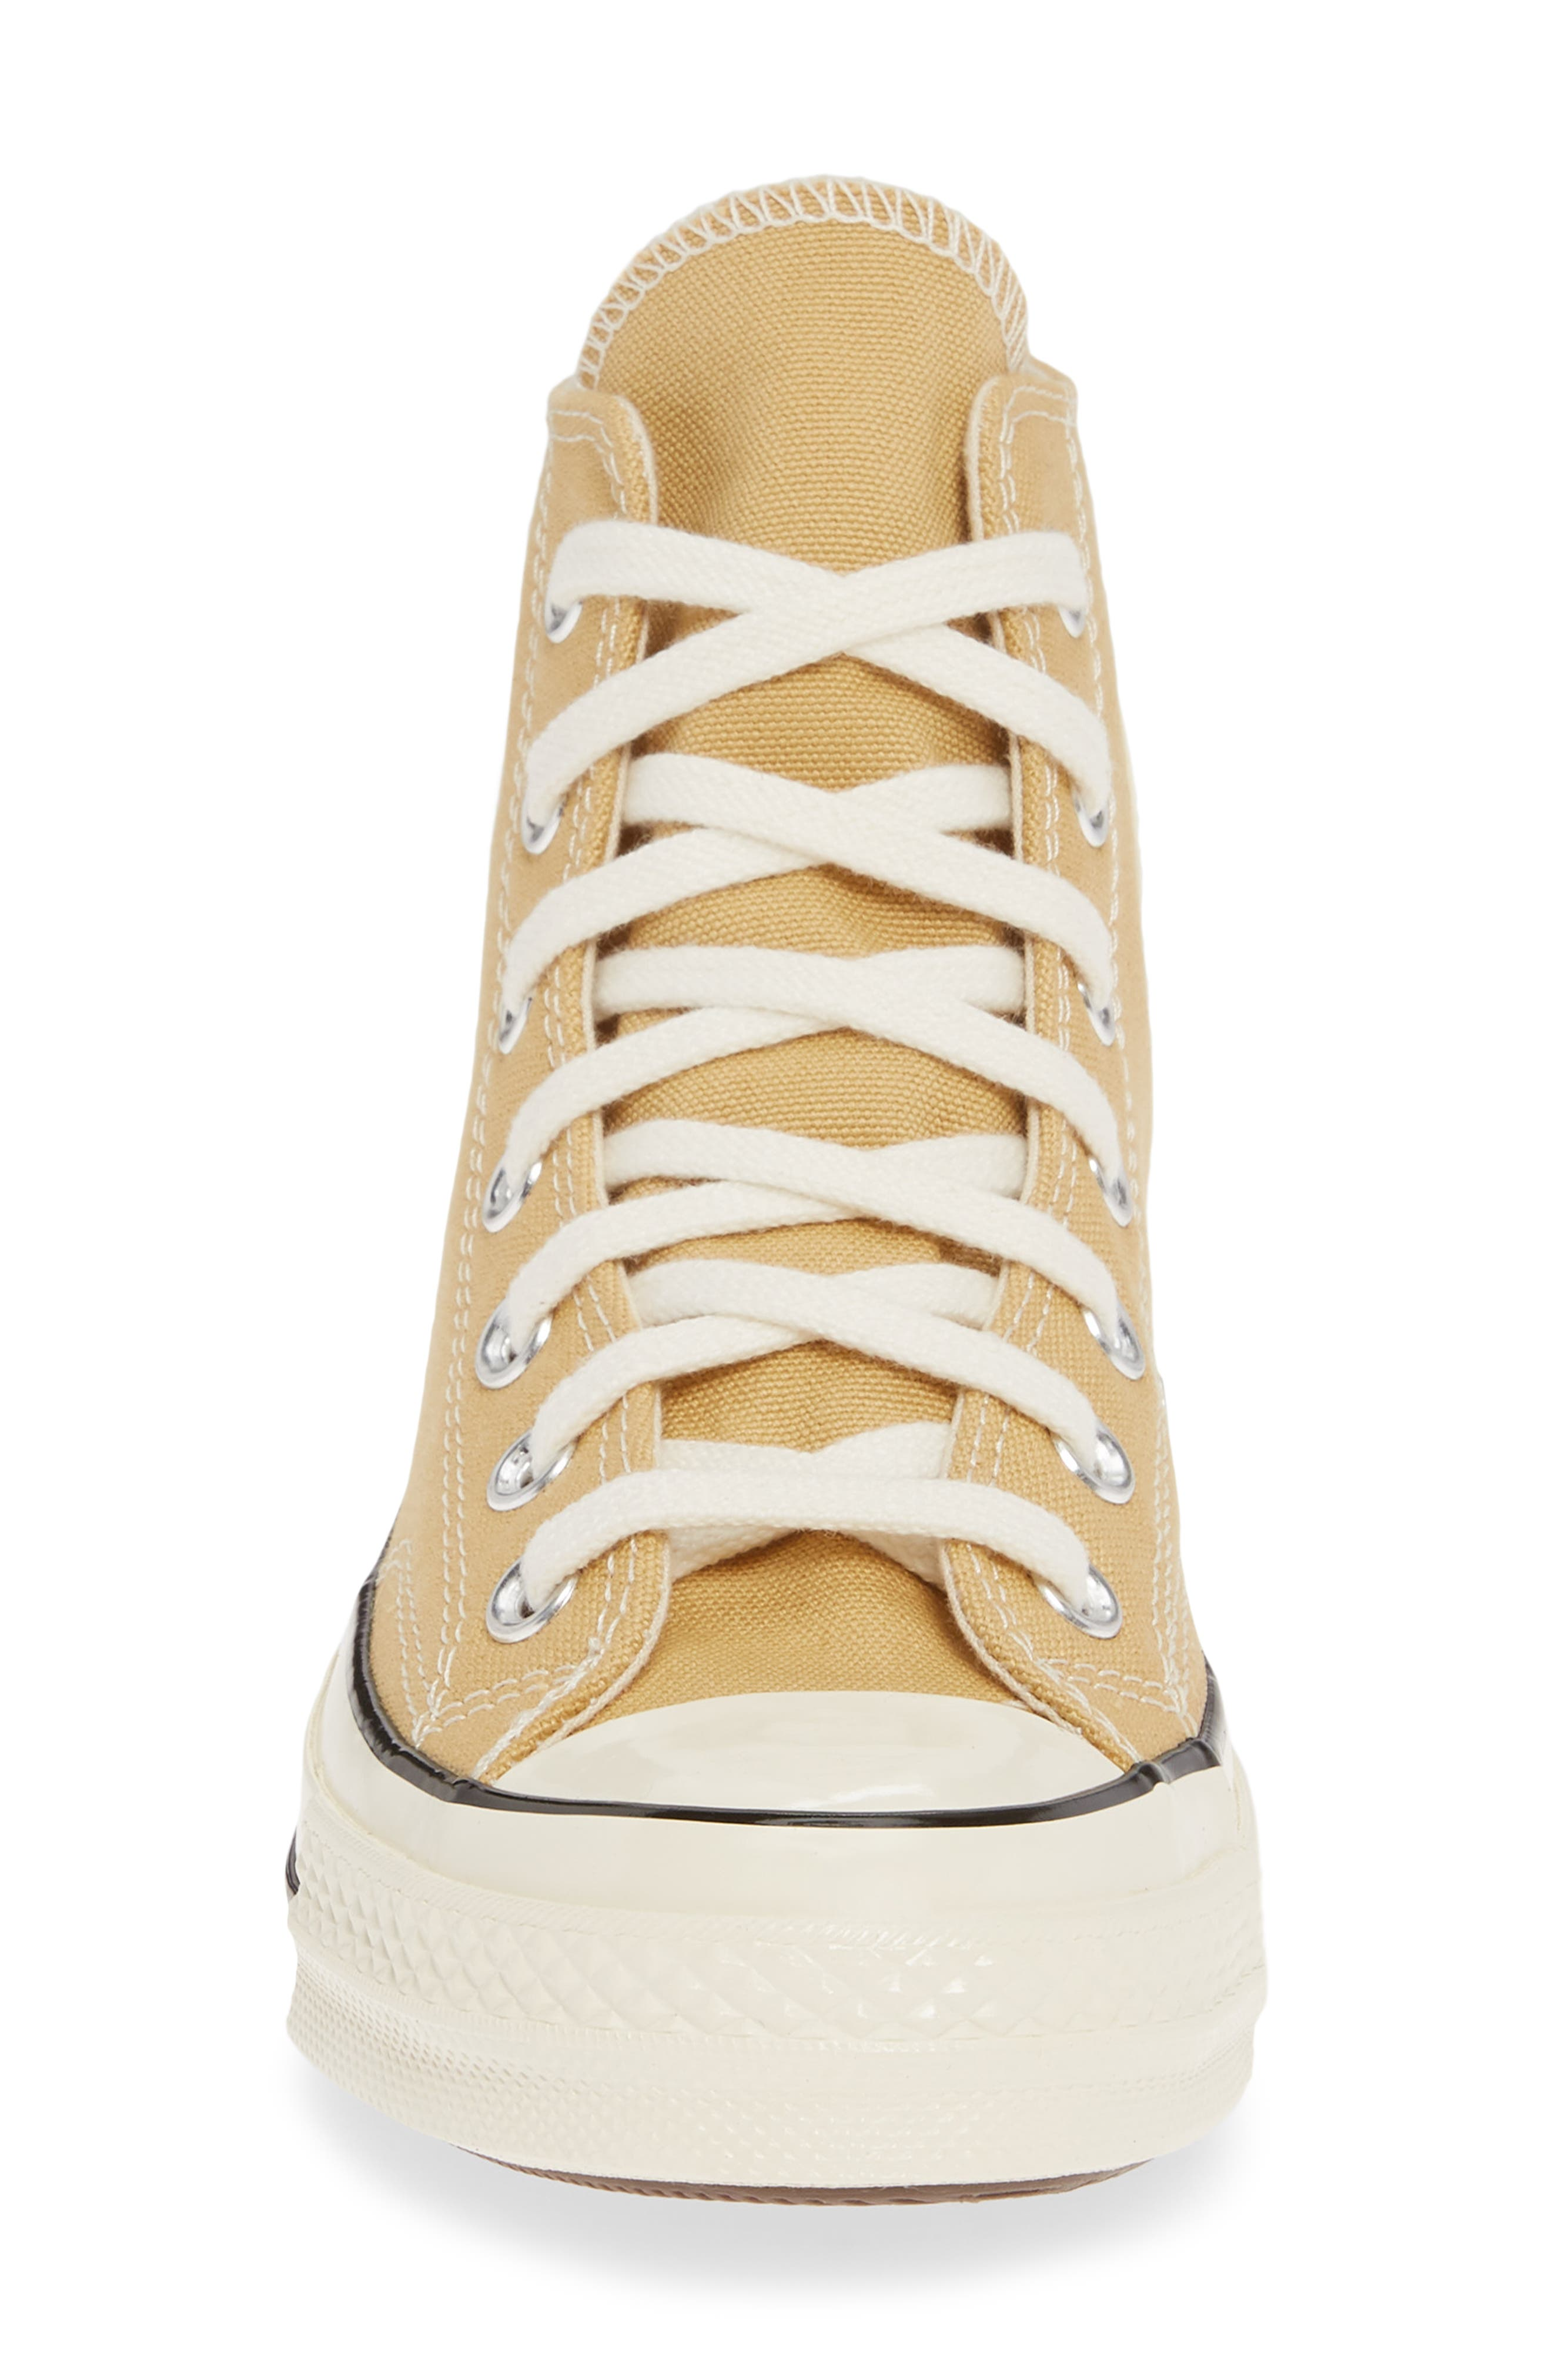 CONVERSE, Chuck Taylor<sup>®</sup> All Star<sup>®</sup> 70 High Top Sneaker, Alternate thumbnail 4, color, CLUB GOLD/ EGRET/ BLACK